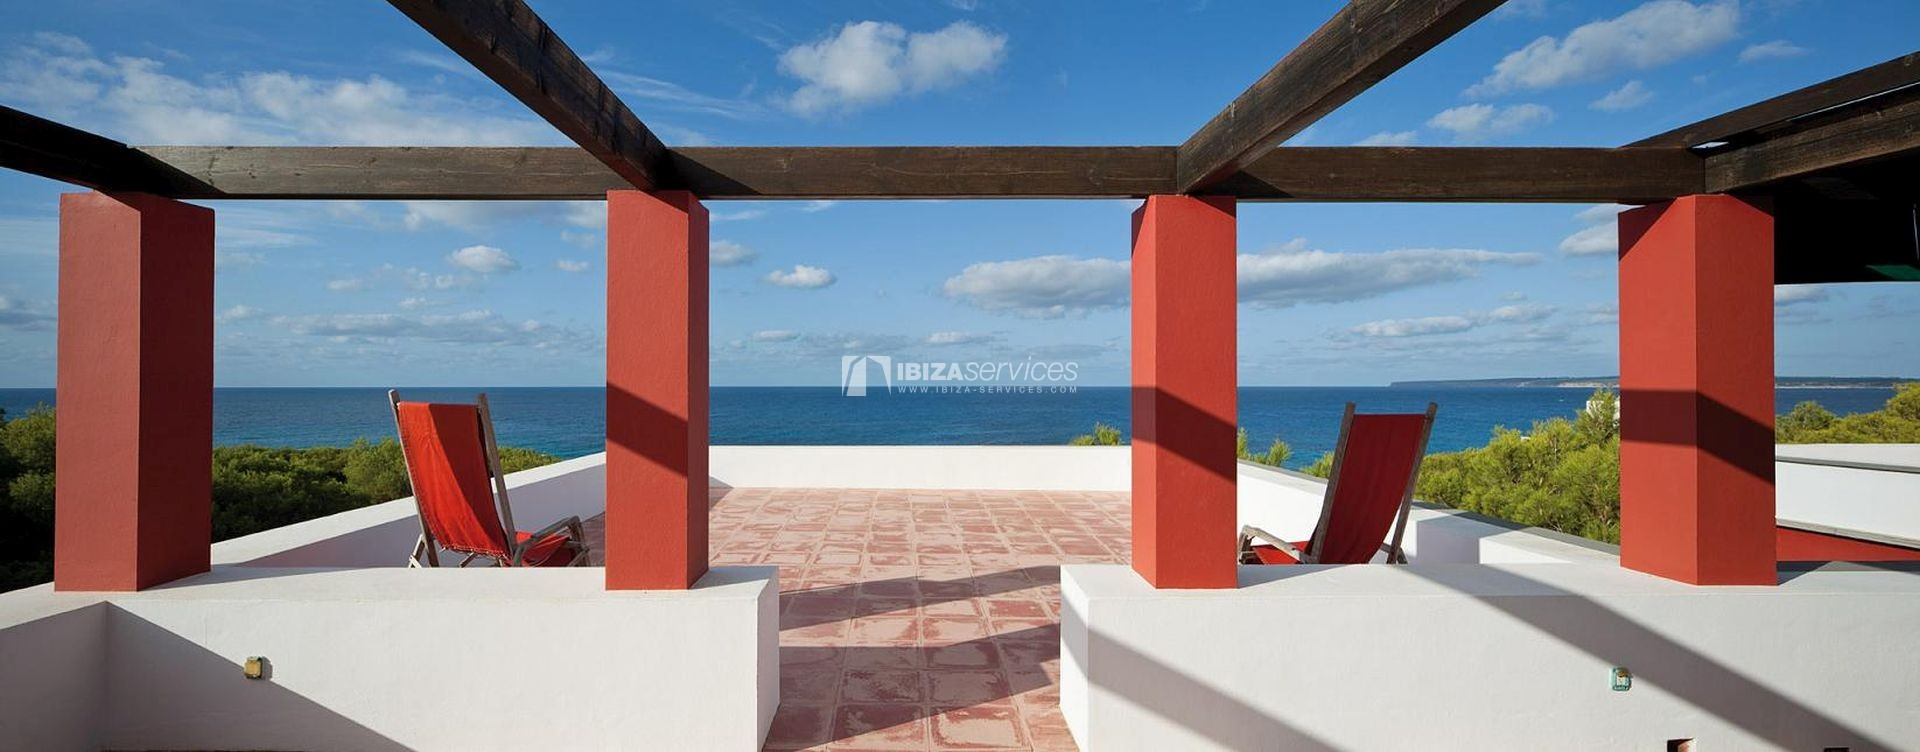 Villa for sale Formentera with amazing sea views perspectiva 2